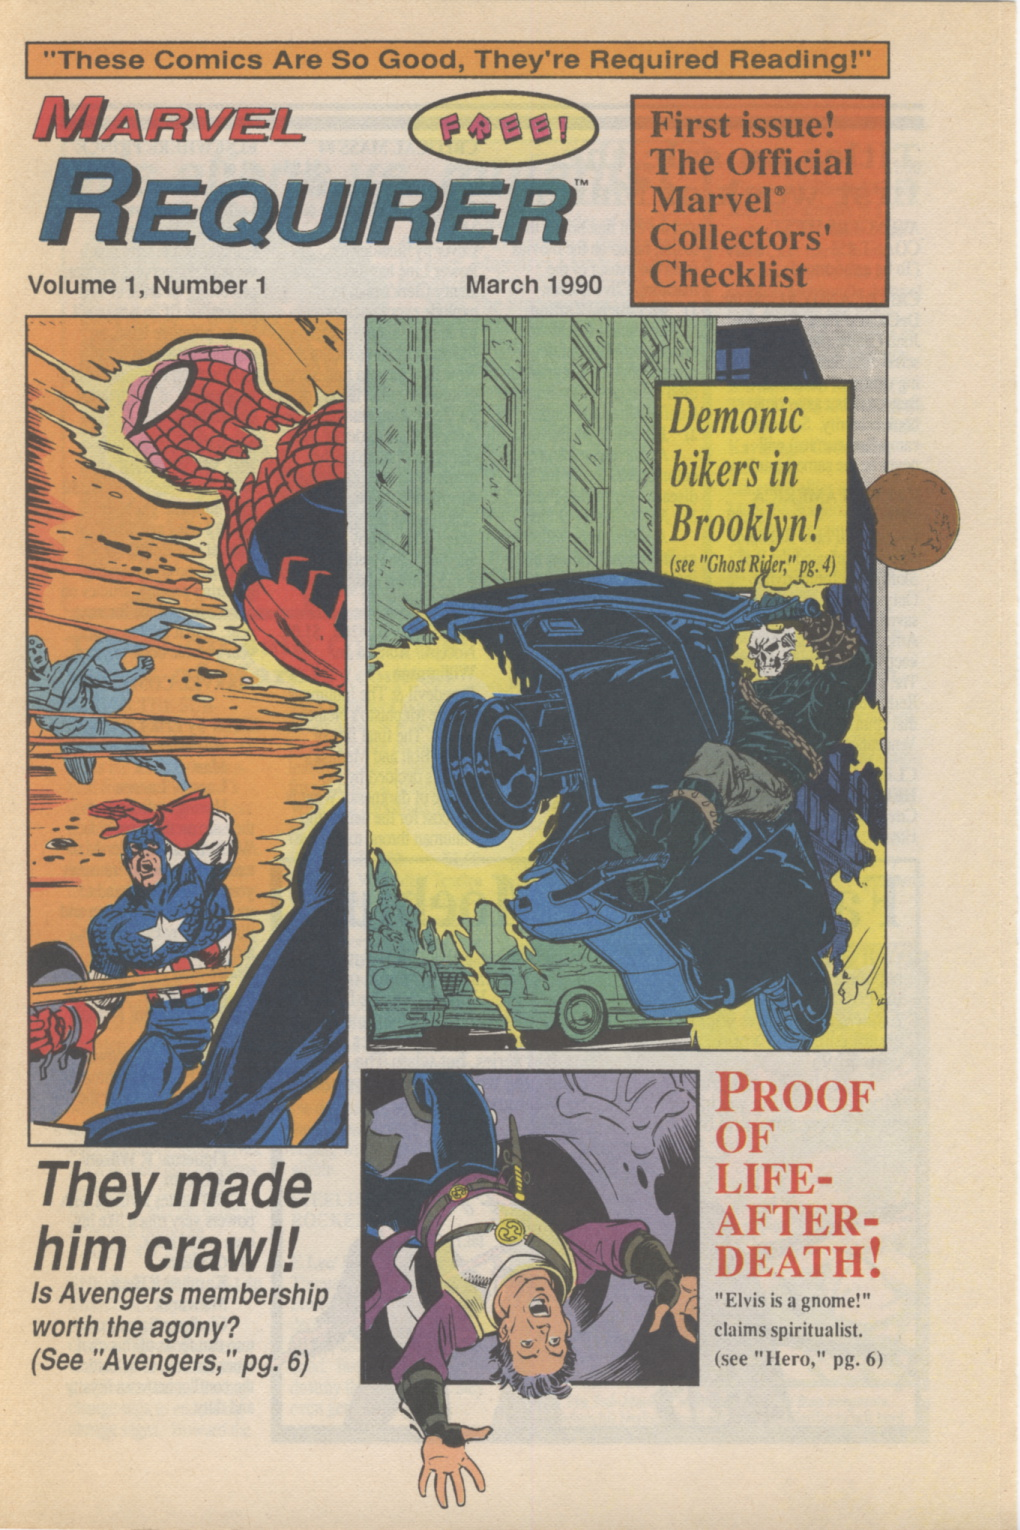 Time Capsule: Marvel Requirer 1, March 1990